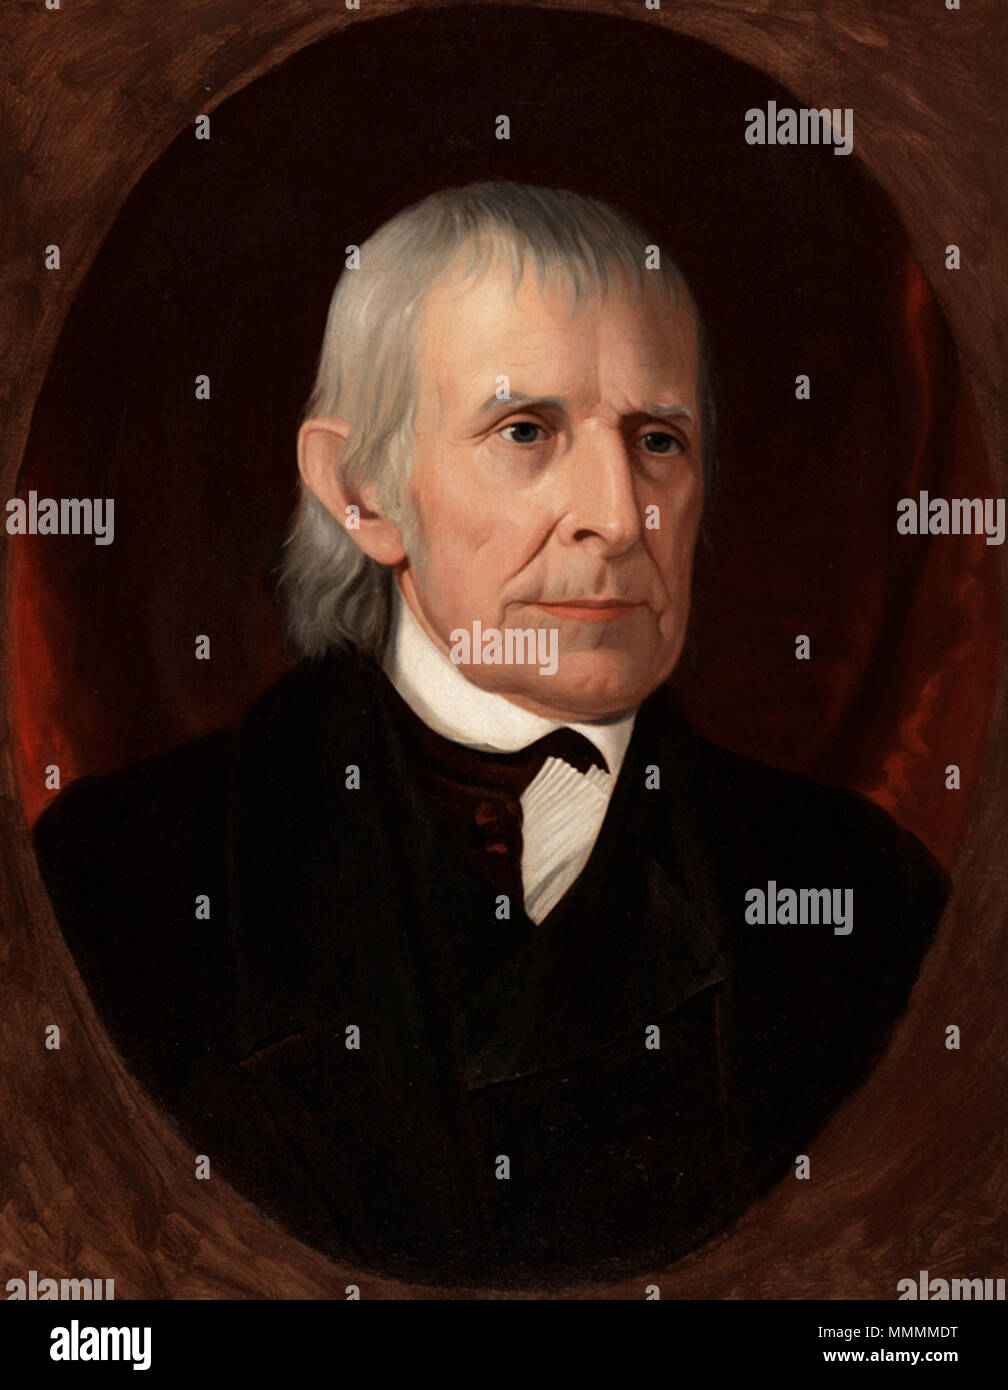 . English: A painting of Adam Eckfeldt, chief coiner of the US Mint from 1814-1839. Image was cropped from the original downloaded version to remove the 3 dimensional gold frame. This image was published in 1893 in black and white in the book 'Illustrated History of the United States Mint, Philadelphia, Pennsylvania; George G. Evans'.  . circa 1845. Portrait by Samuel Du Bois (b.1808, d.1889), portrait artist from Doylestown, Pennsylvania. Adam Eckfeldt Color Painting Ellipse - Stock Image